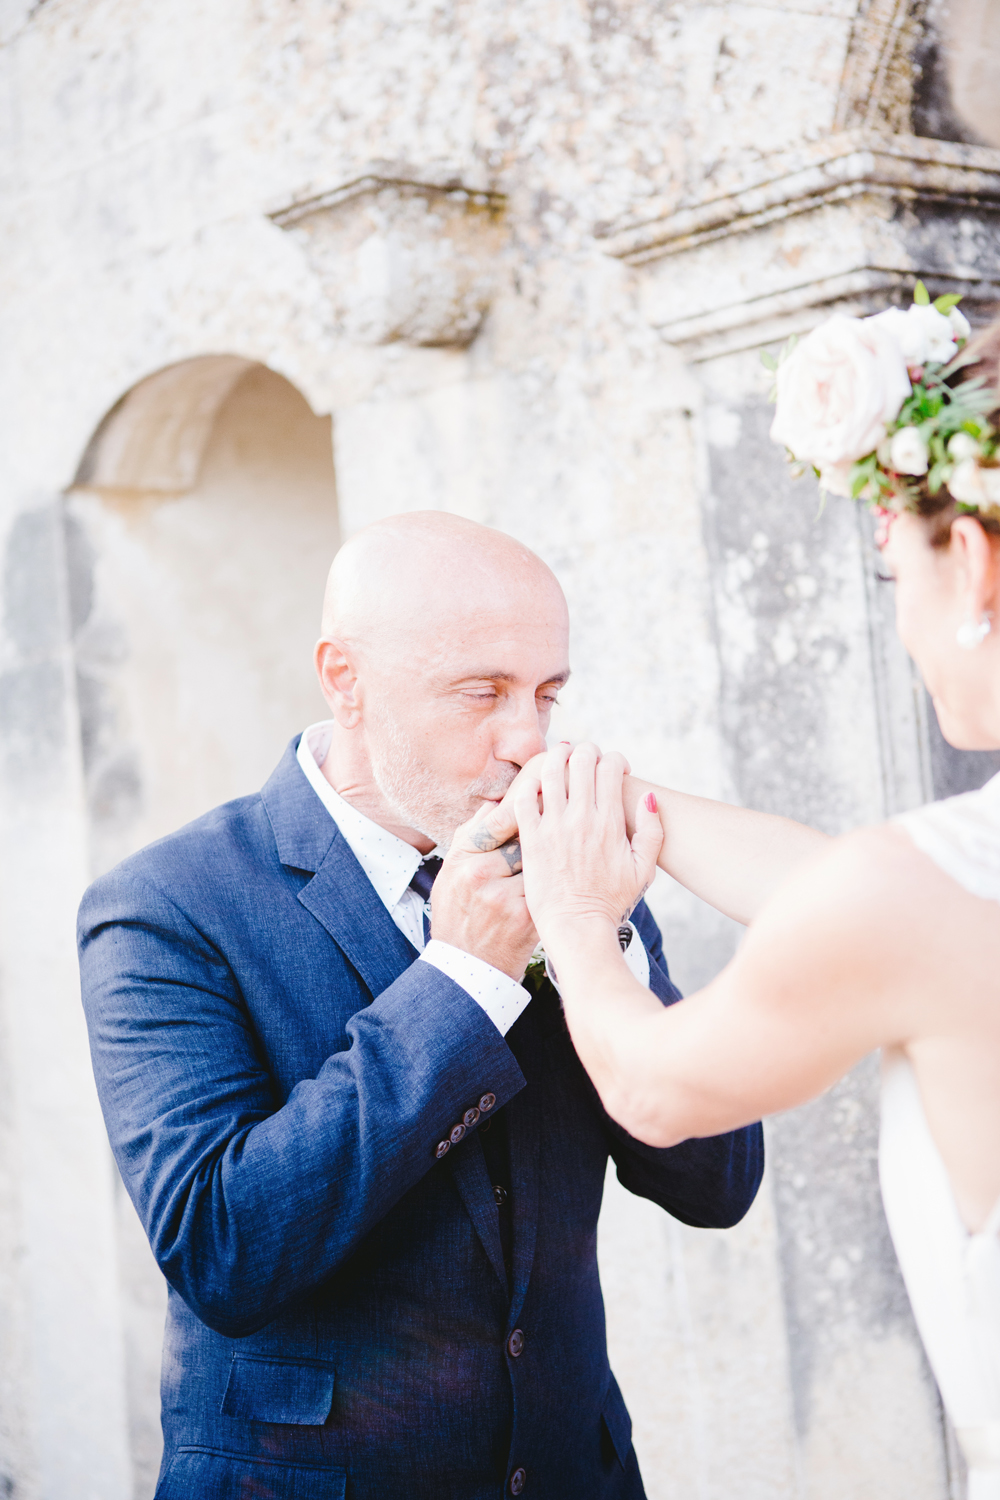 Les Amis Photo_Destination Wedding Photographer_Wedding in Puglia_BARMIC_15_345.jpg